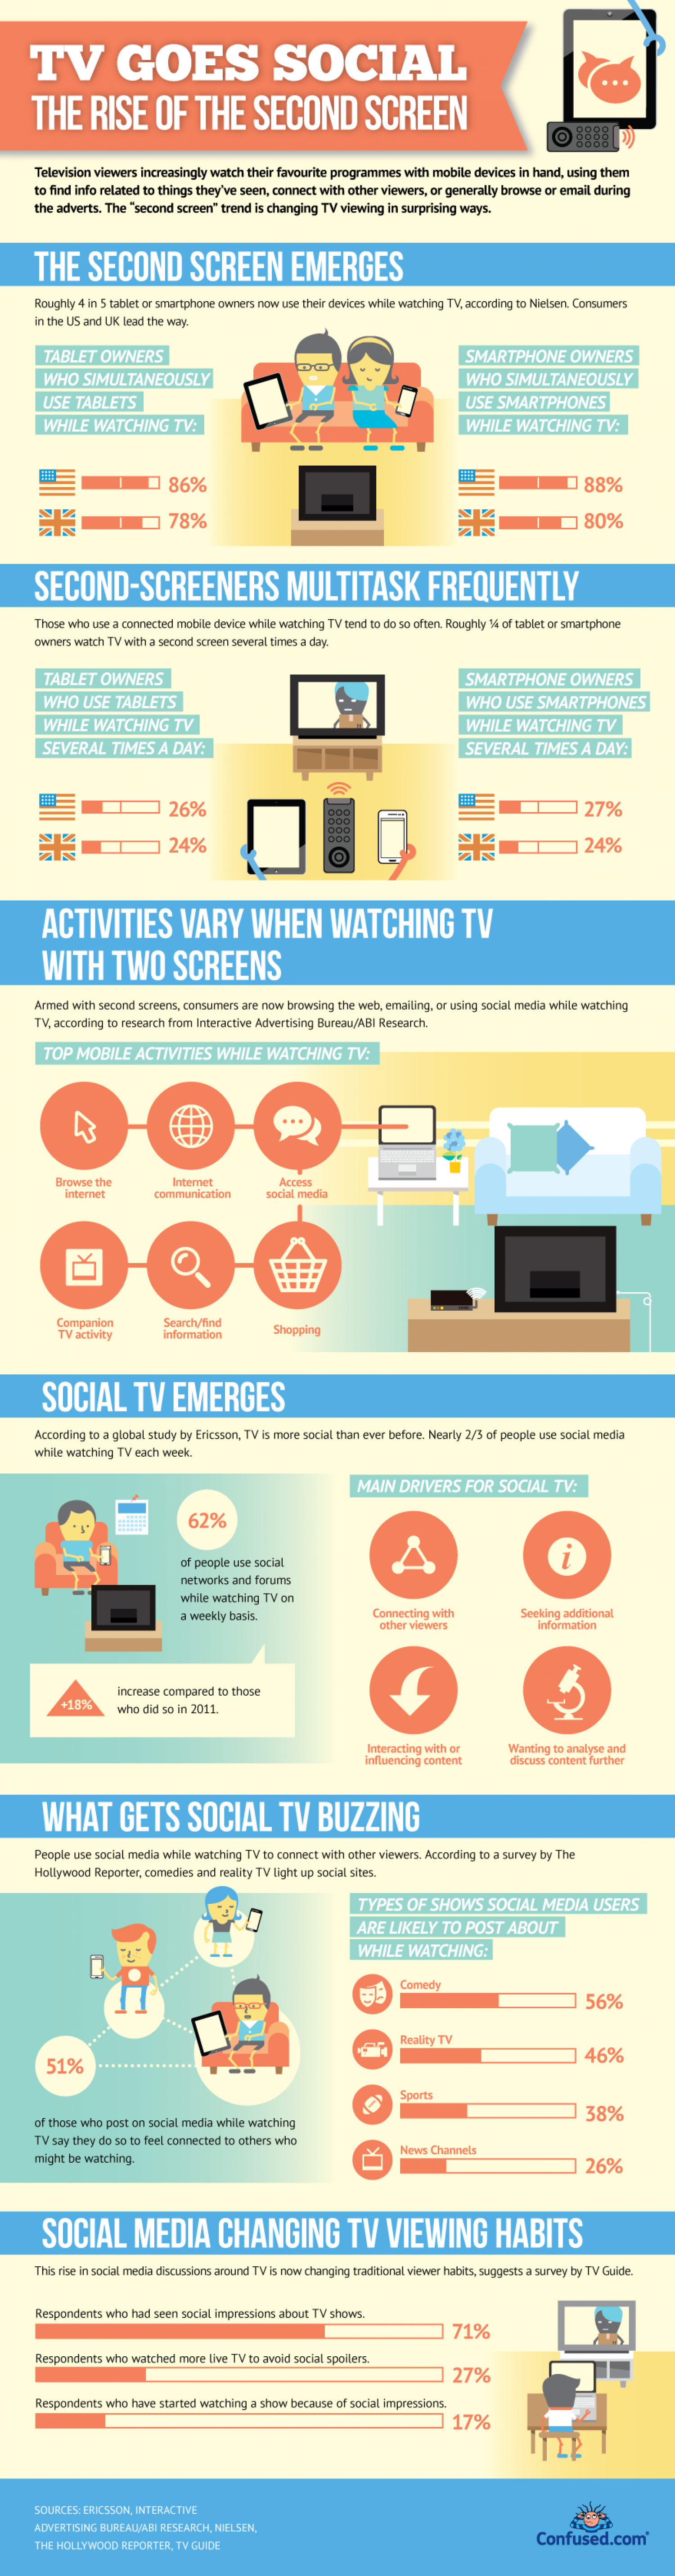 TV goes social: The rise of the second screen Infographic